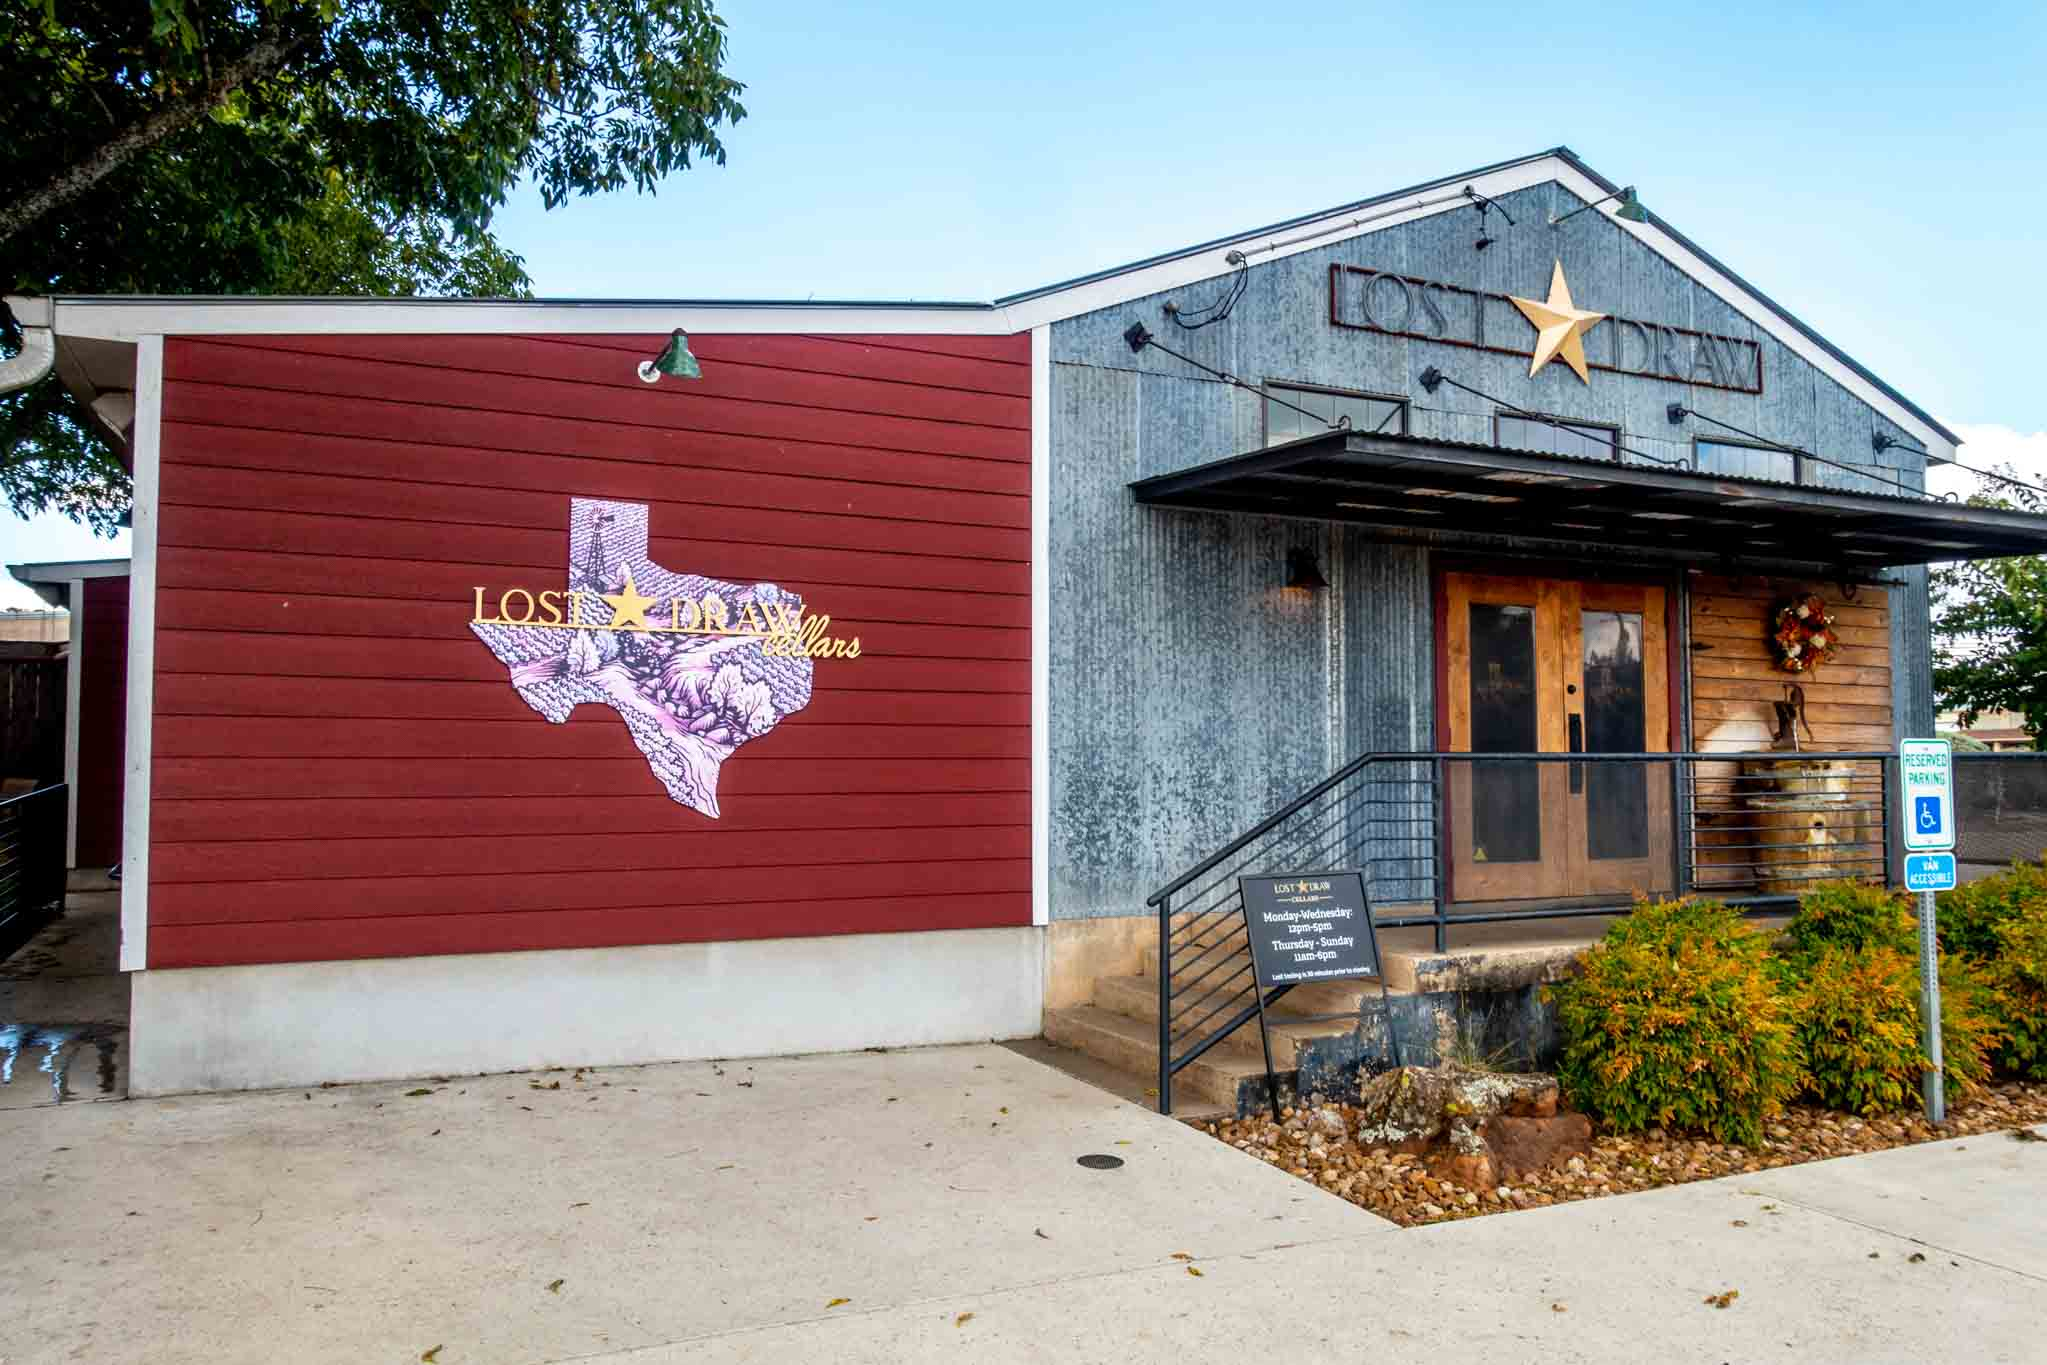 Lost Draw Cellars tasting room with Texas-shaped logo and signage